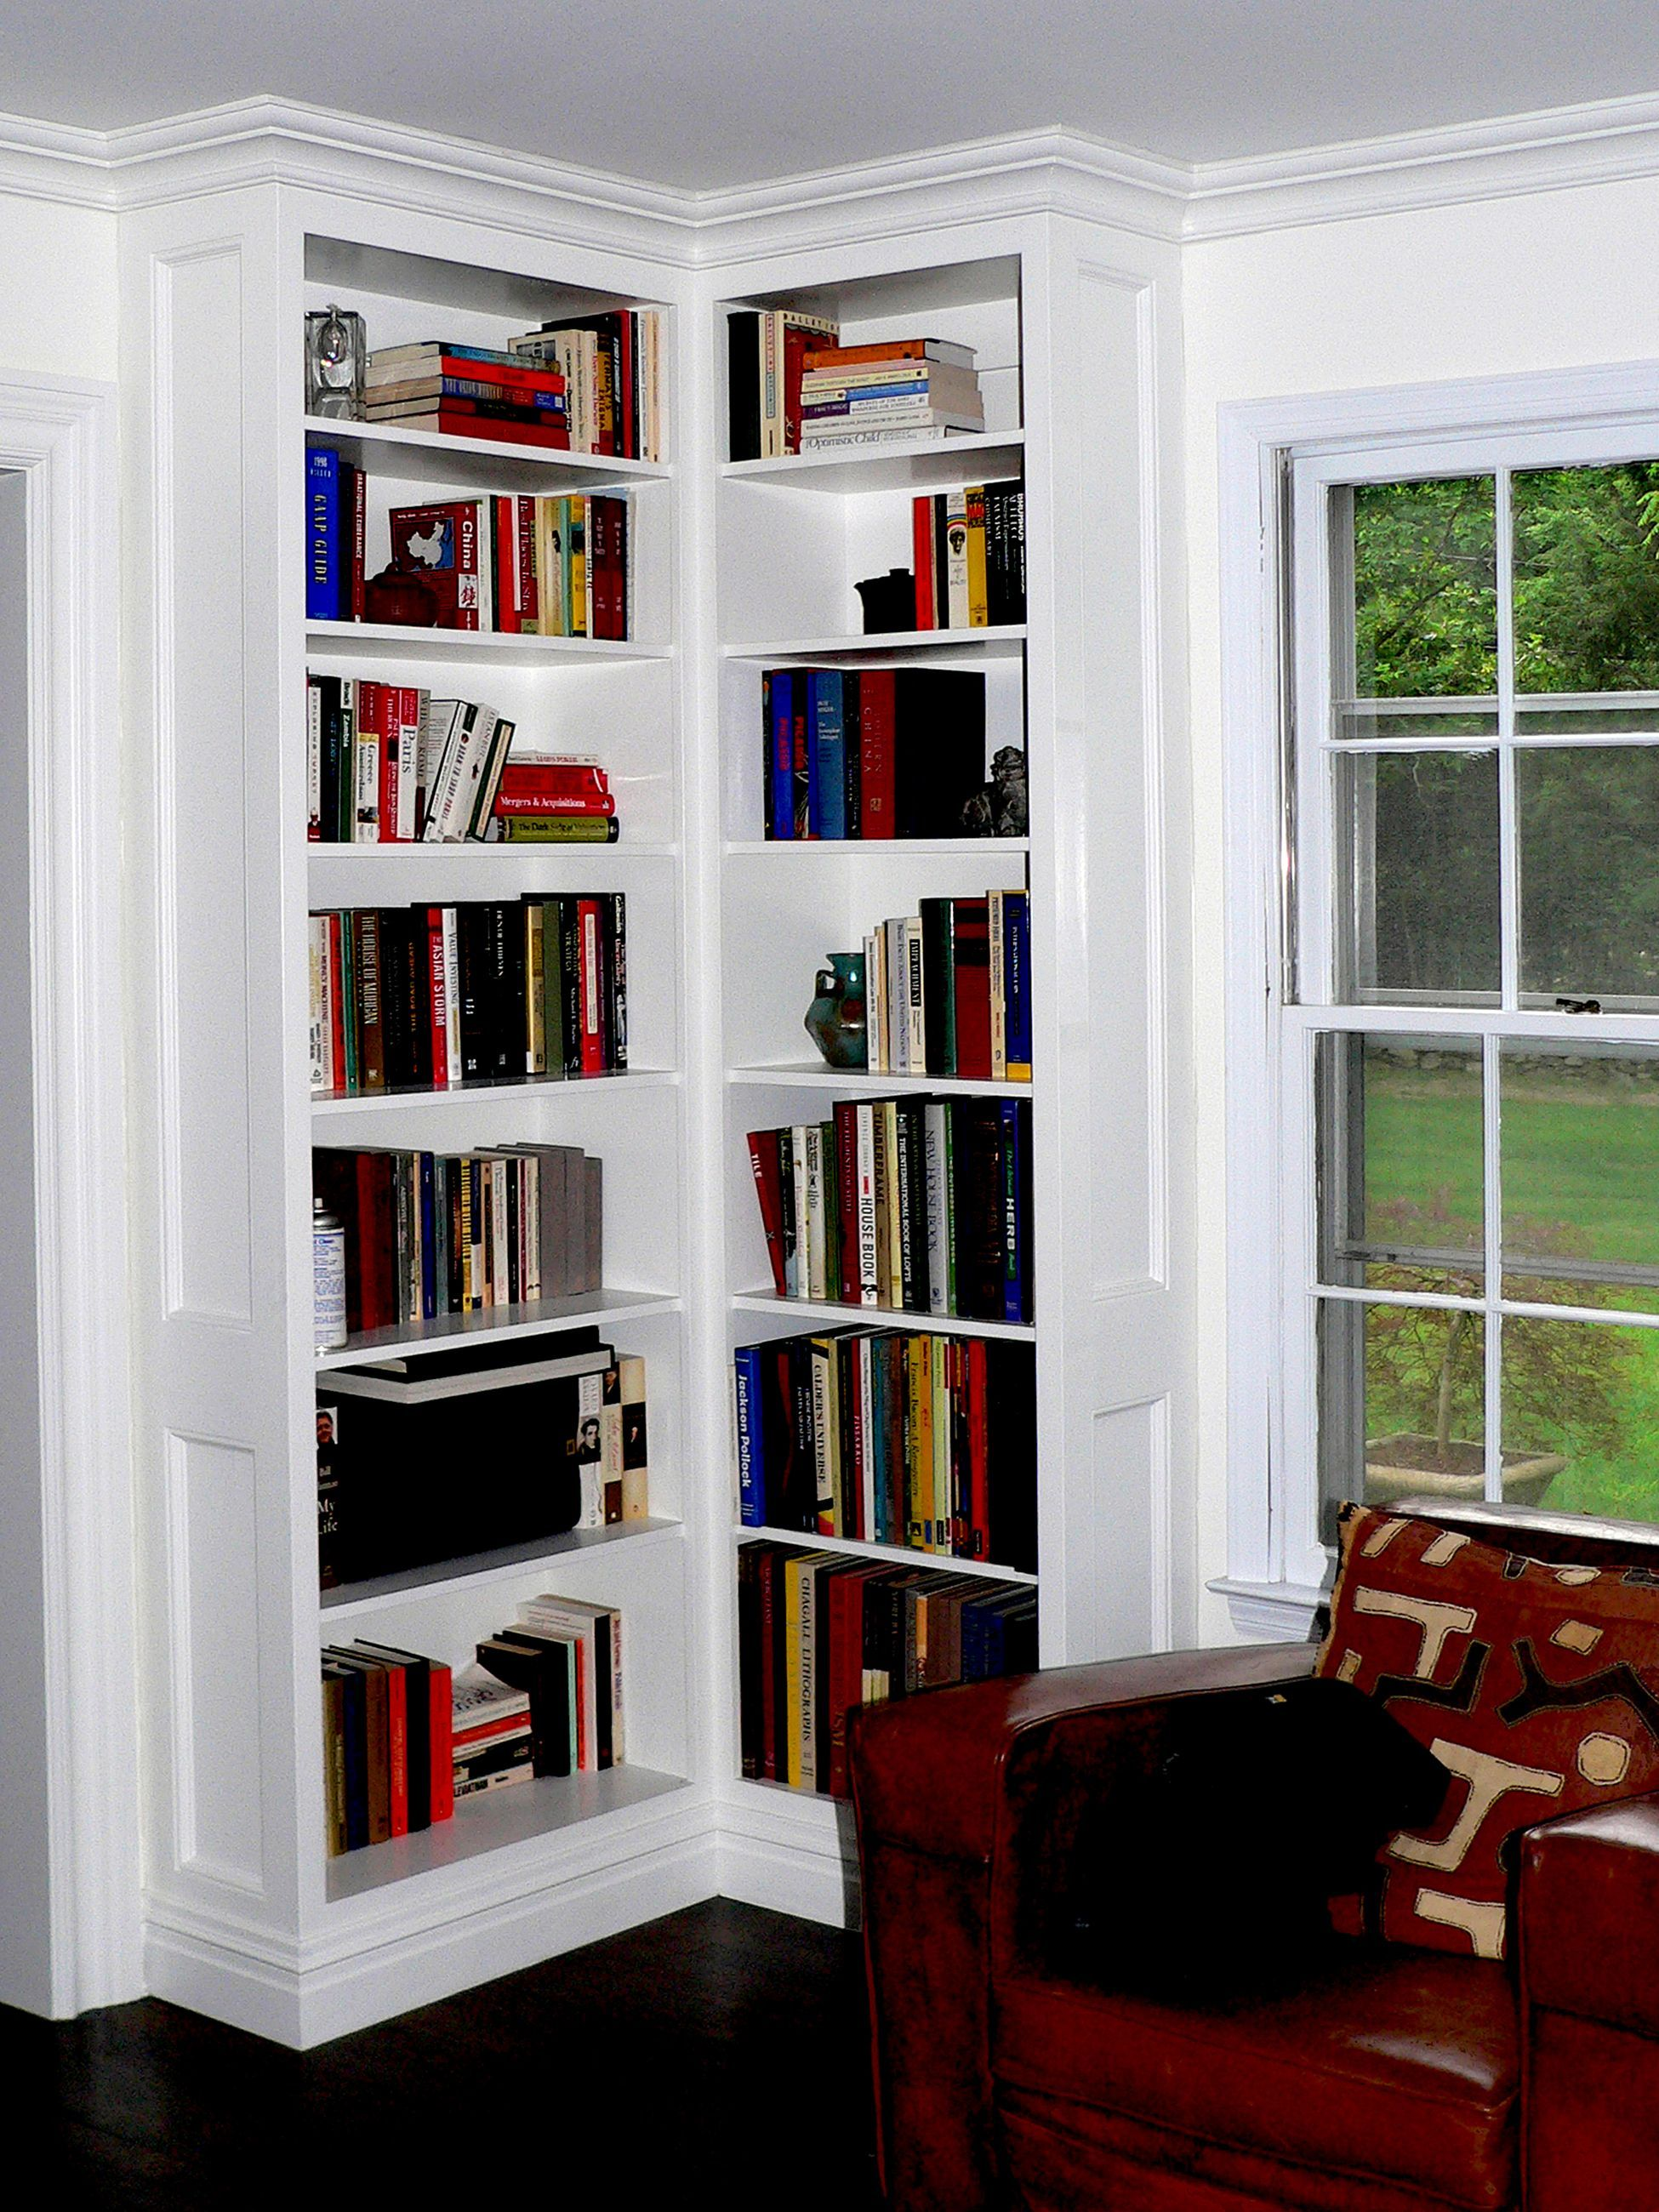 15+ Cozy And Relaxing Corner Bookshelf Design Ideas You Need To Try